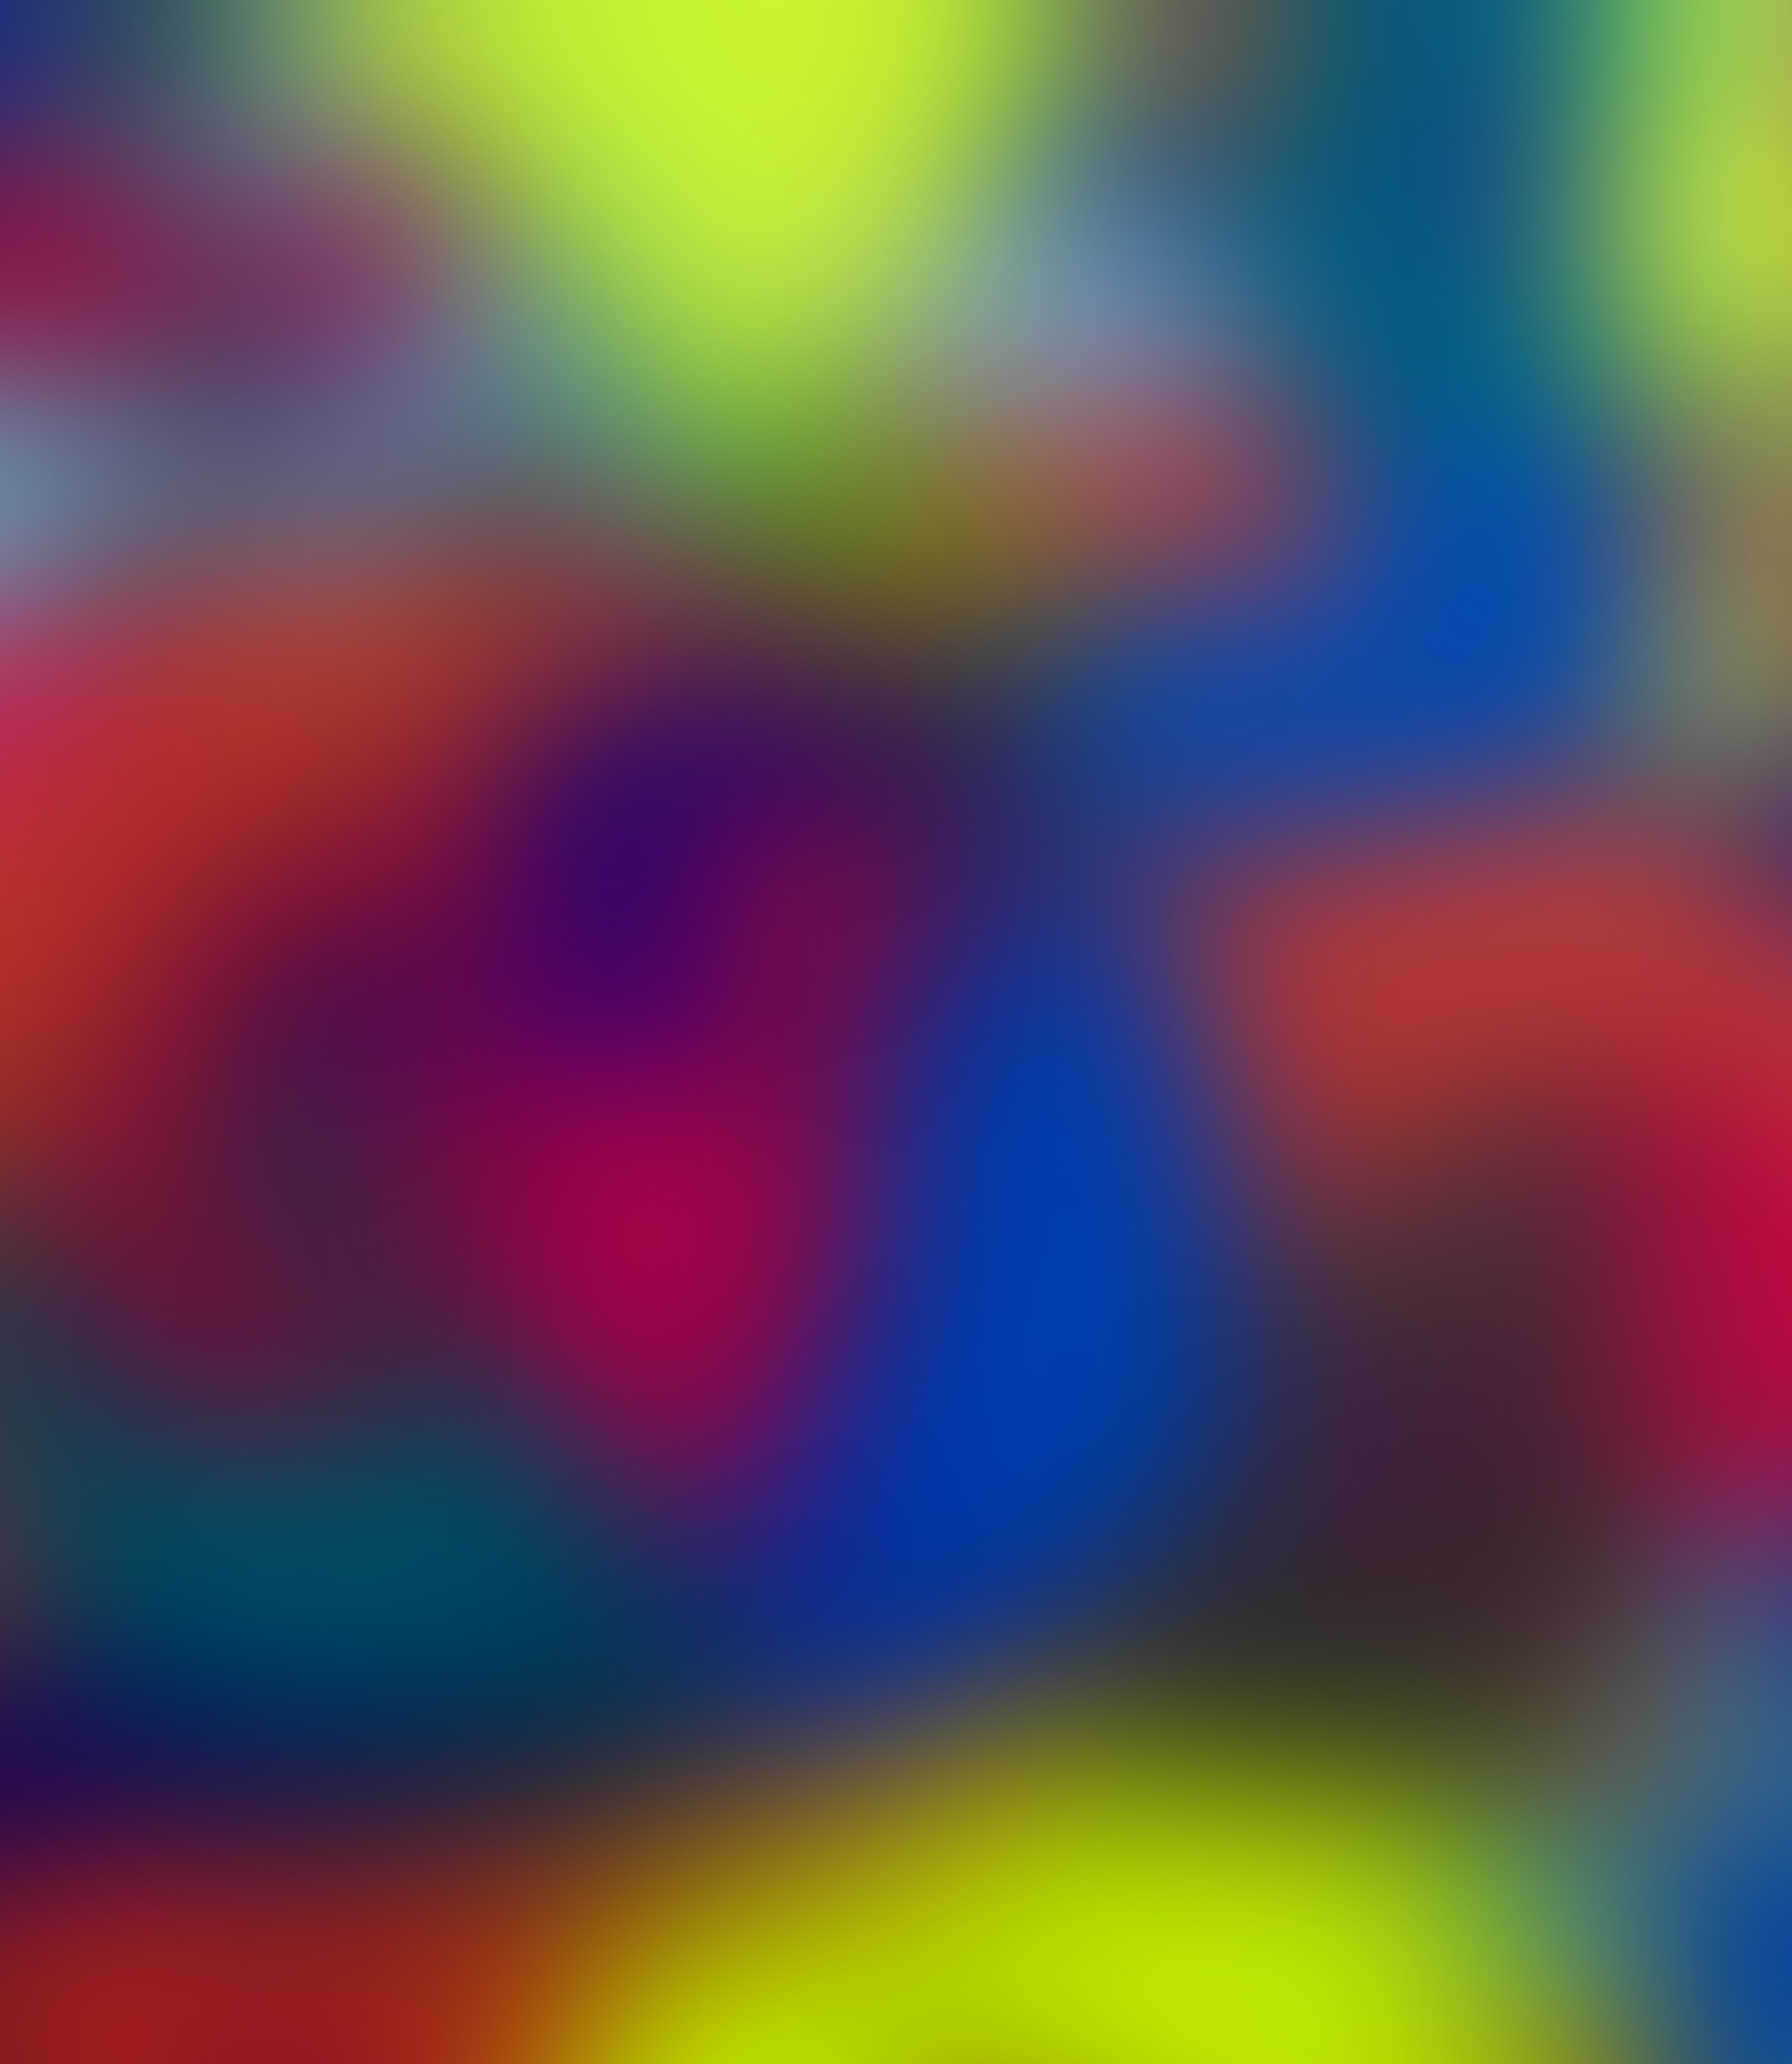 Colorful blurry abstract background photo